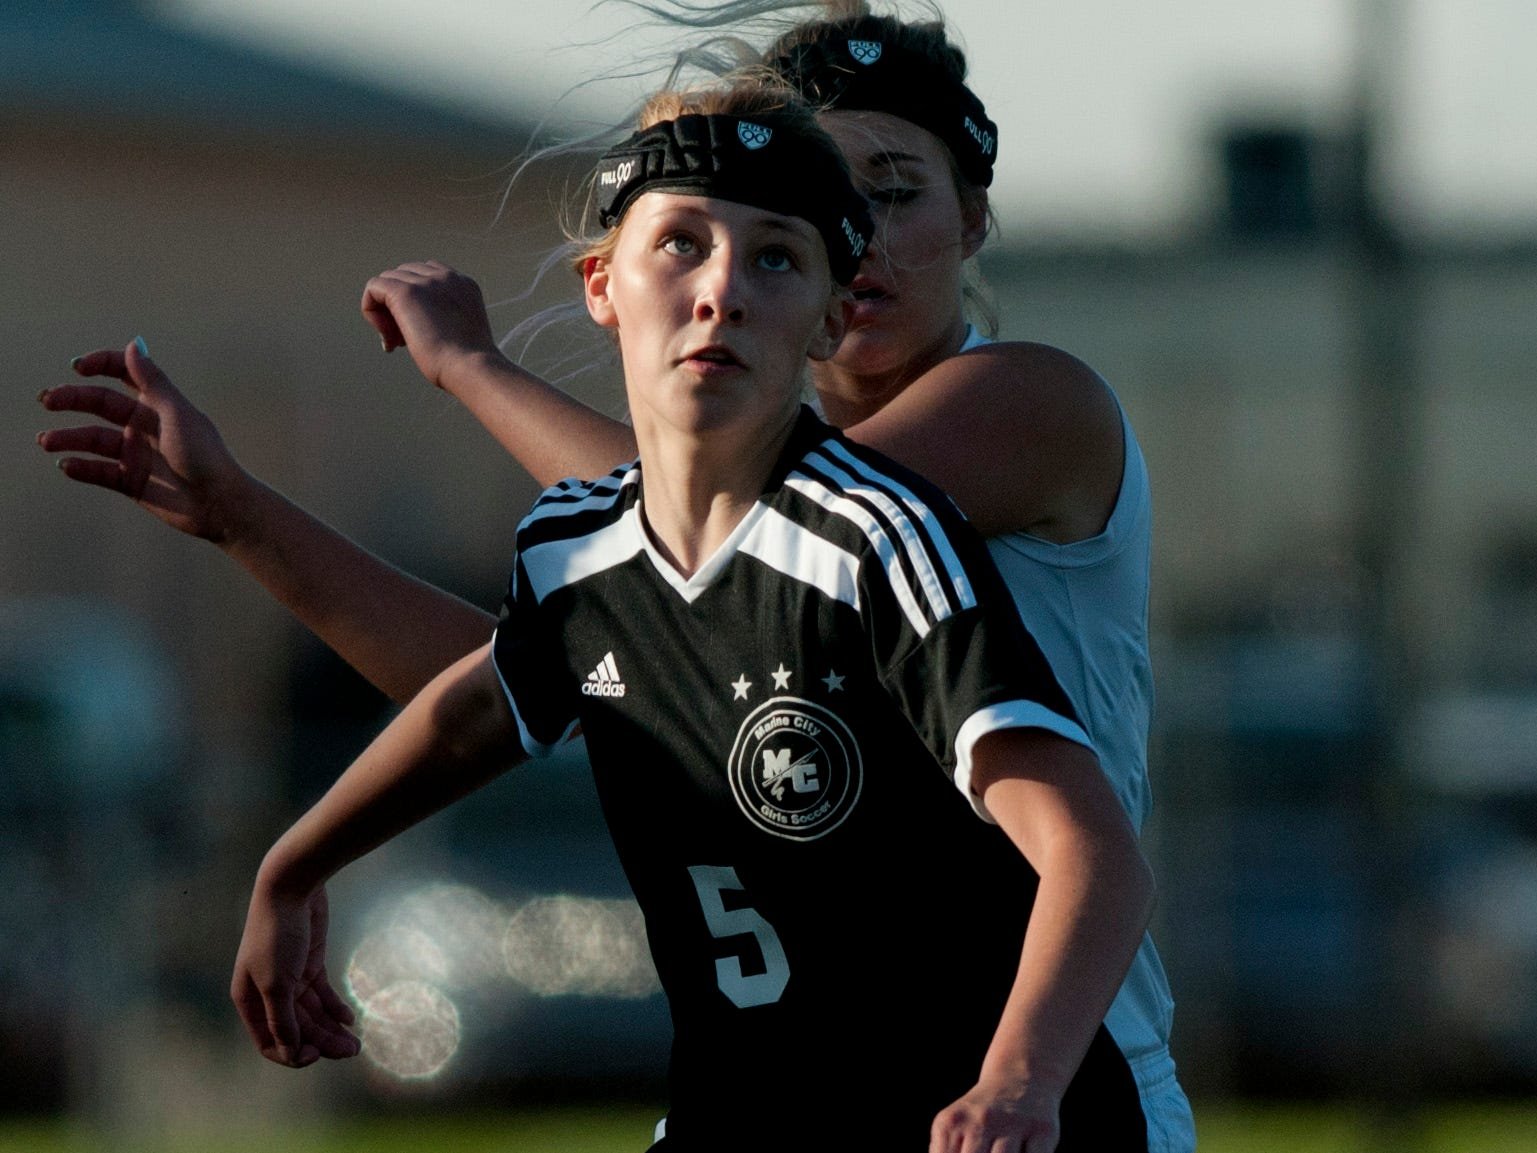 Marine City sophomore Emilie Andrews heads the ball during a soccer same Wednesday, May 13, 2015 at East China Stadium.